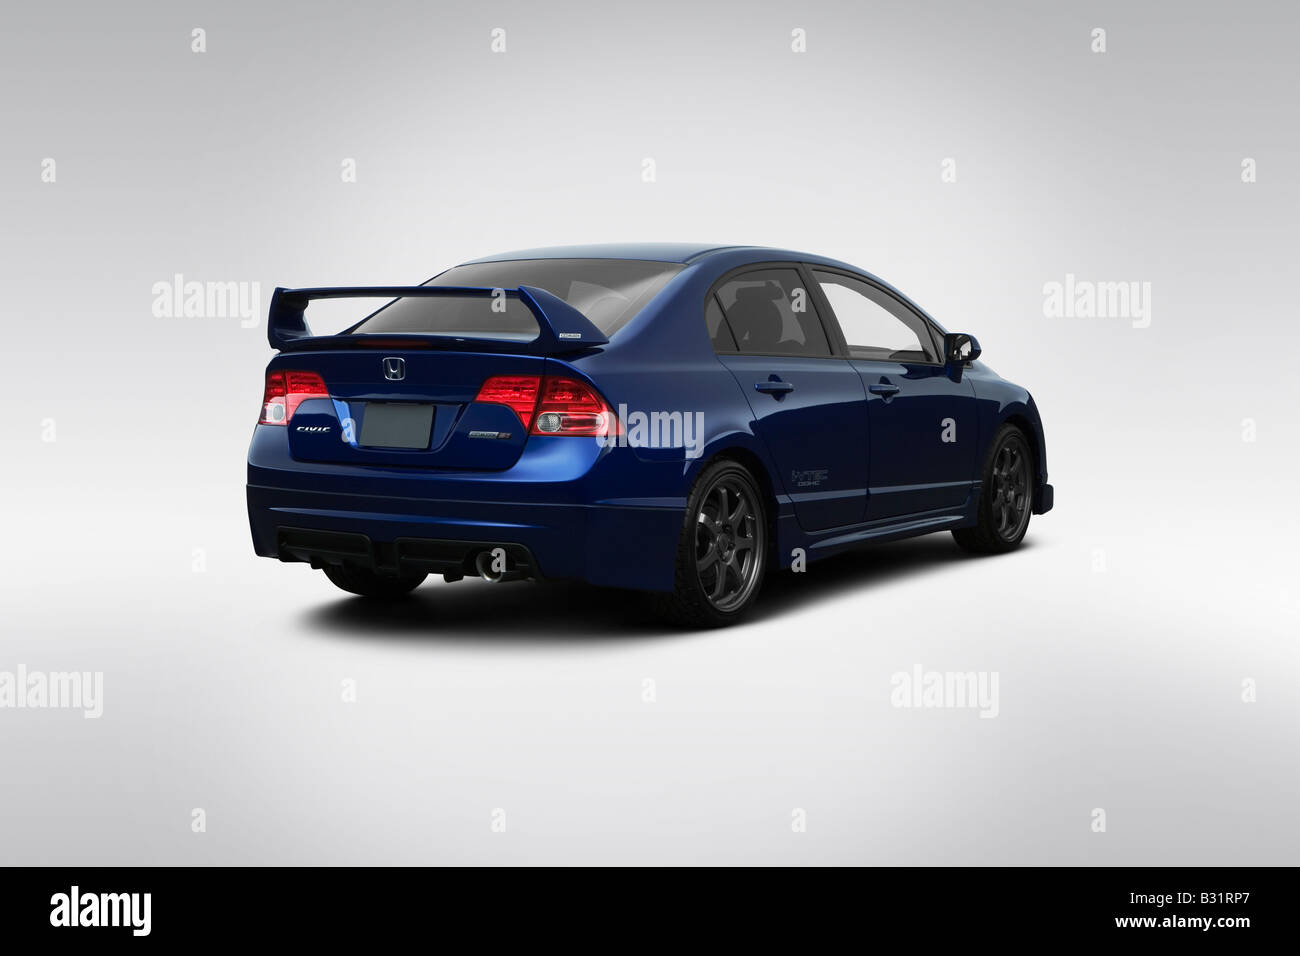 2008 Honda Civic SI Mugen In Blue   Rear Angle View